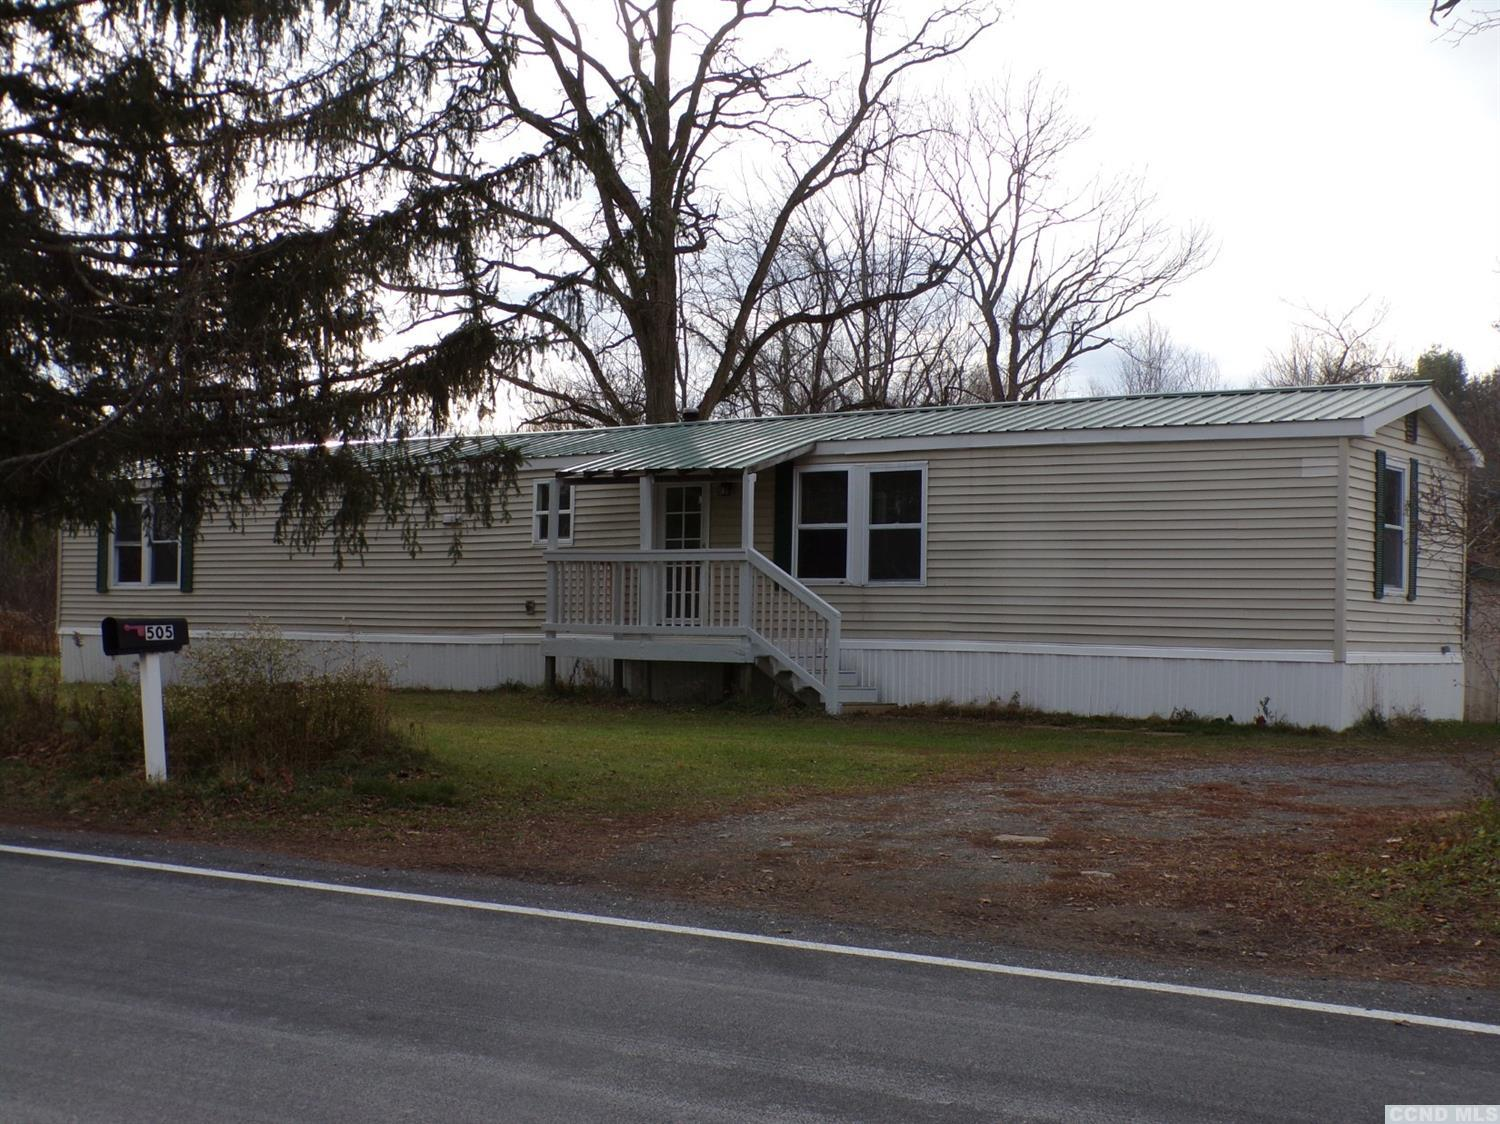 This single wide, manufactured home was completely renovated in 2018, featuring 2 bedrooms and 1.5 baths. It includes NEWER; front door, windows, carpeting, vinyl plank flooring, bathrooms, kitchen with stainless steel appliances, washer and dryer, lighting and insulation. On the exterior; newer skirting, pressure tank for the well, new oil pump and metal roof. There is a front porch, back deck, shed and access to a small pond. ALL furniture stays and new window air conditioning unit. Enjoy country living.